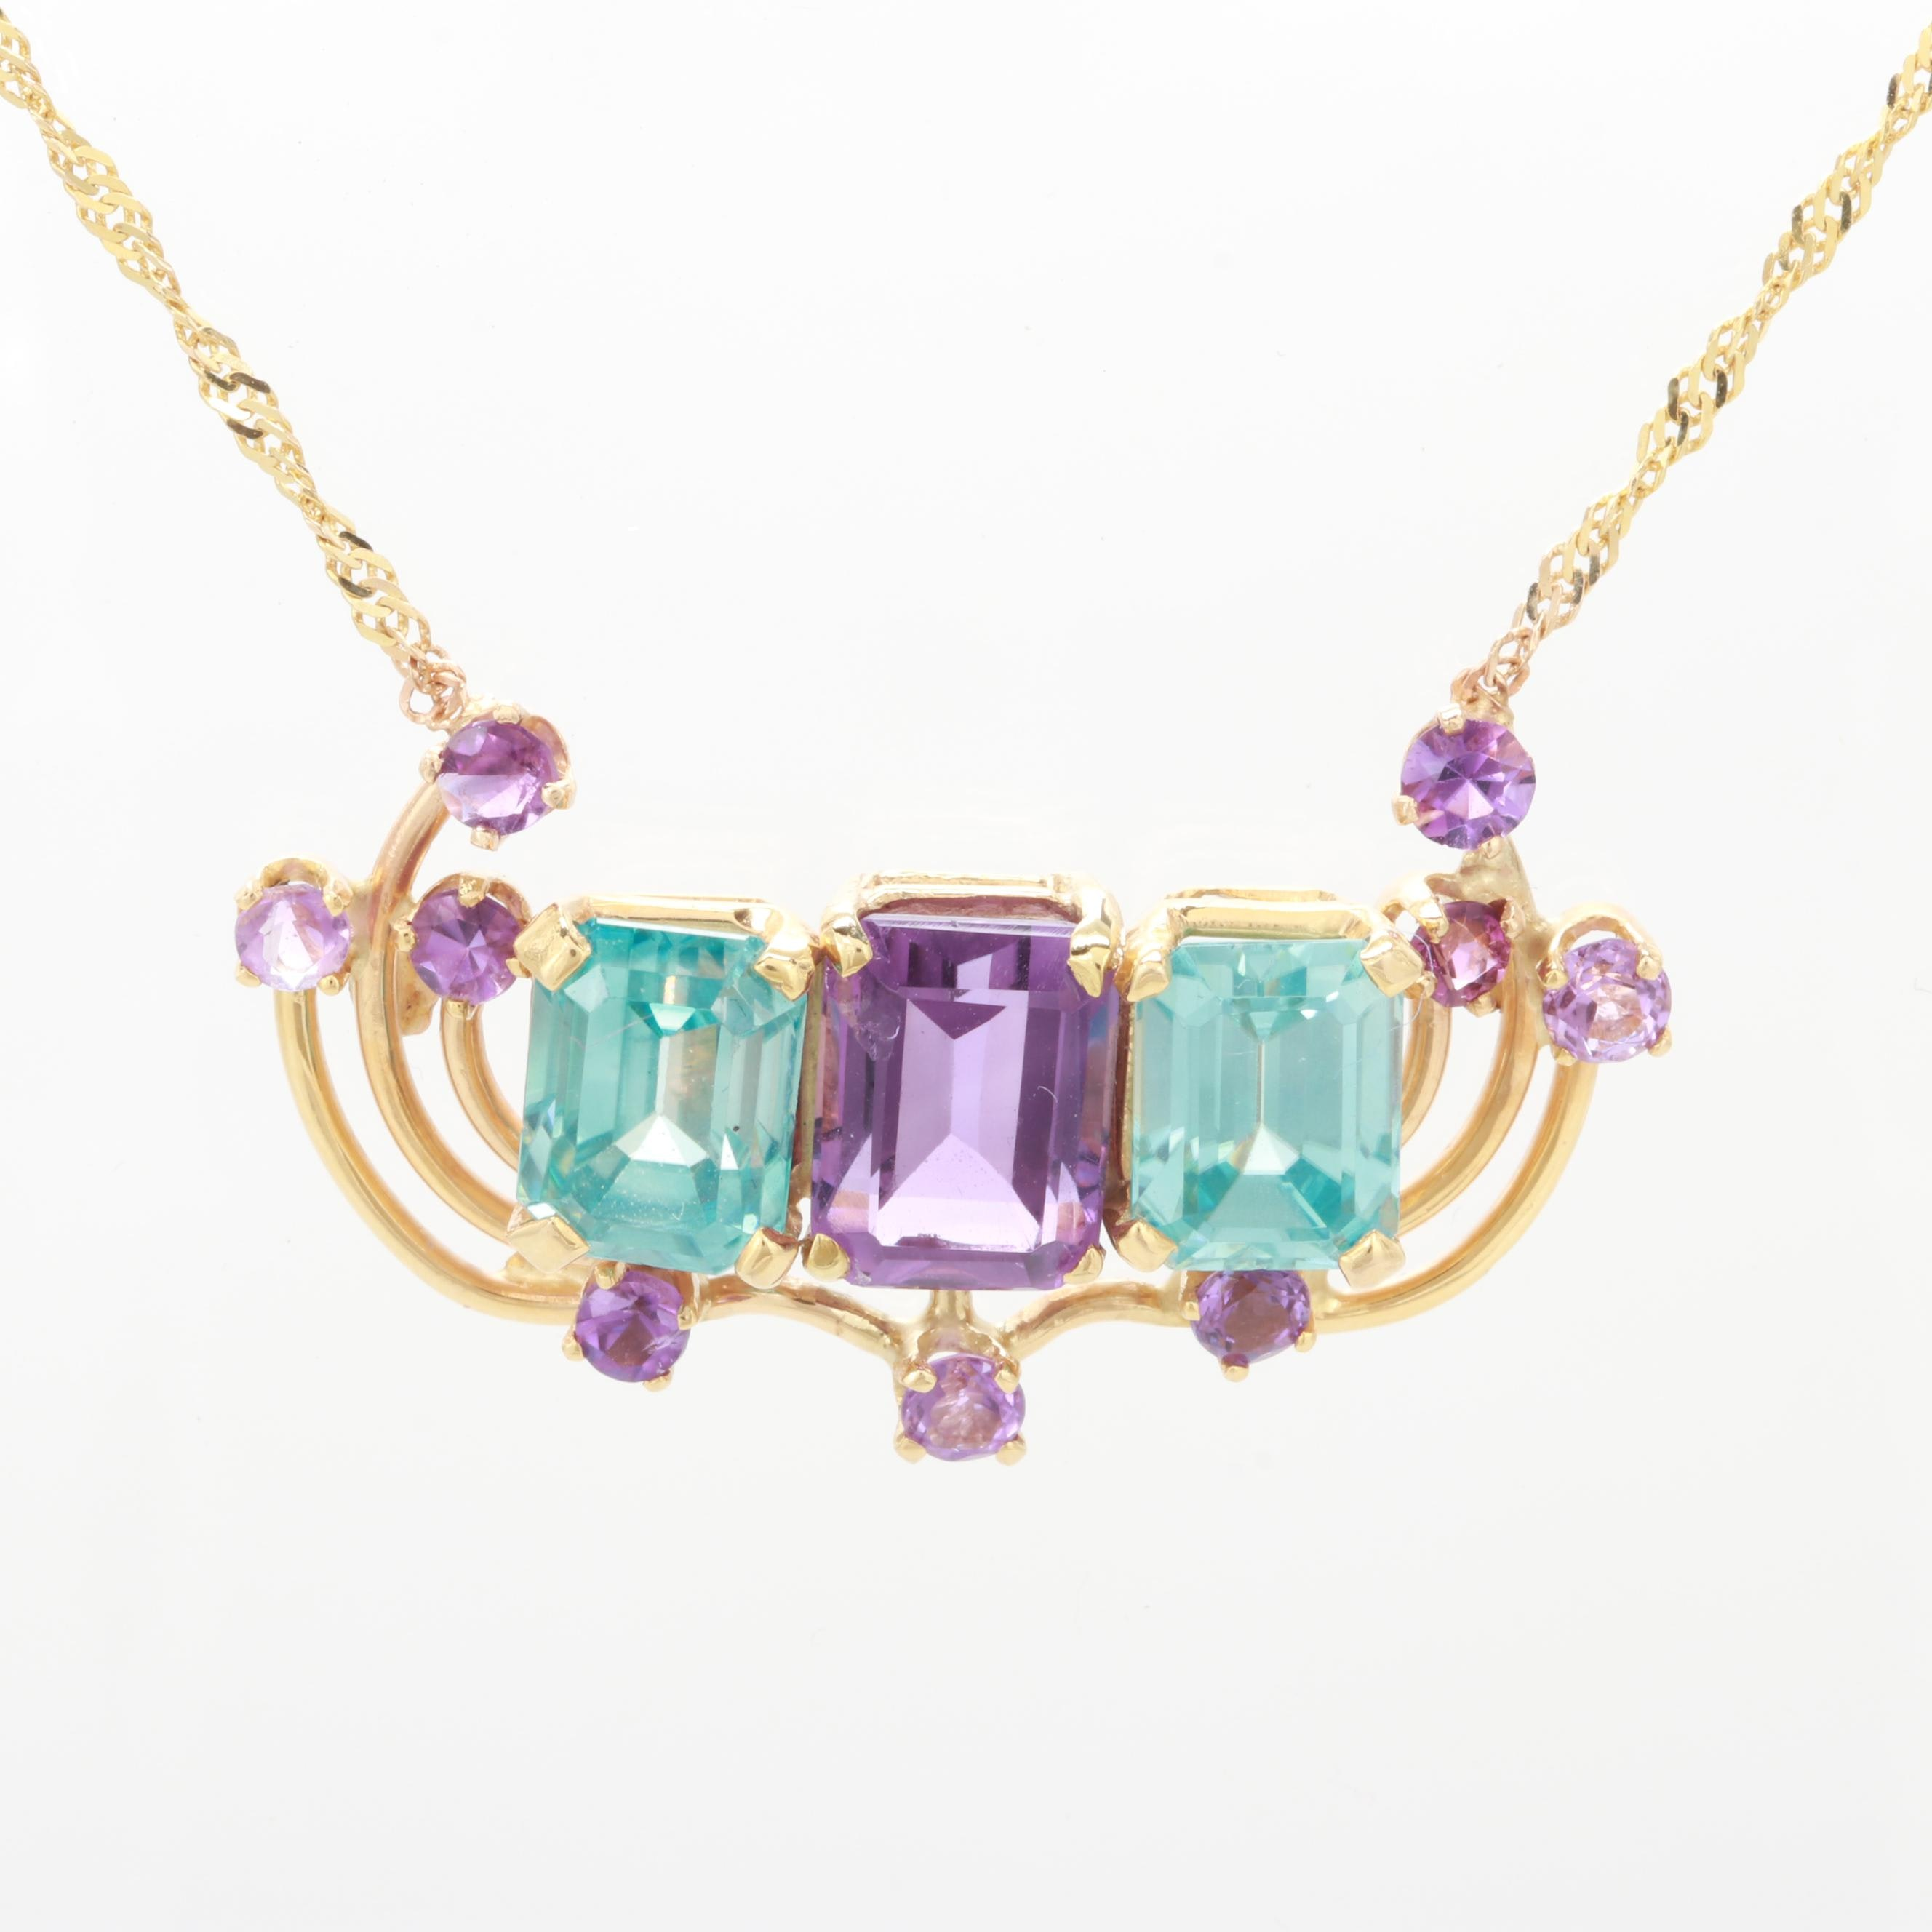 14K Yellow Gold Amethyst and Blue Zircon Necklace